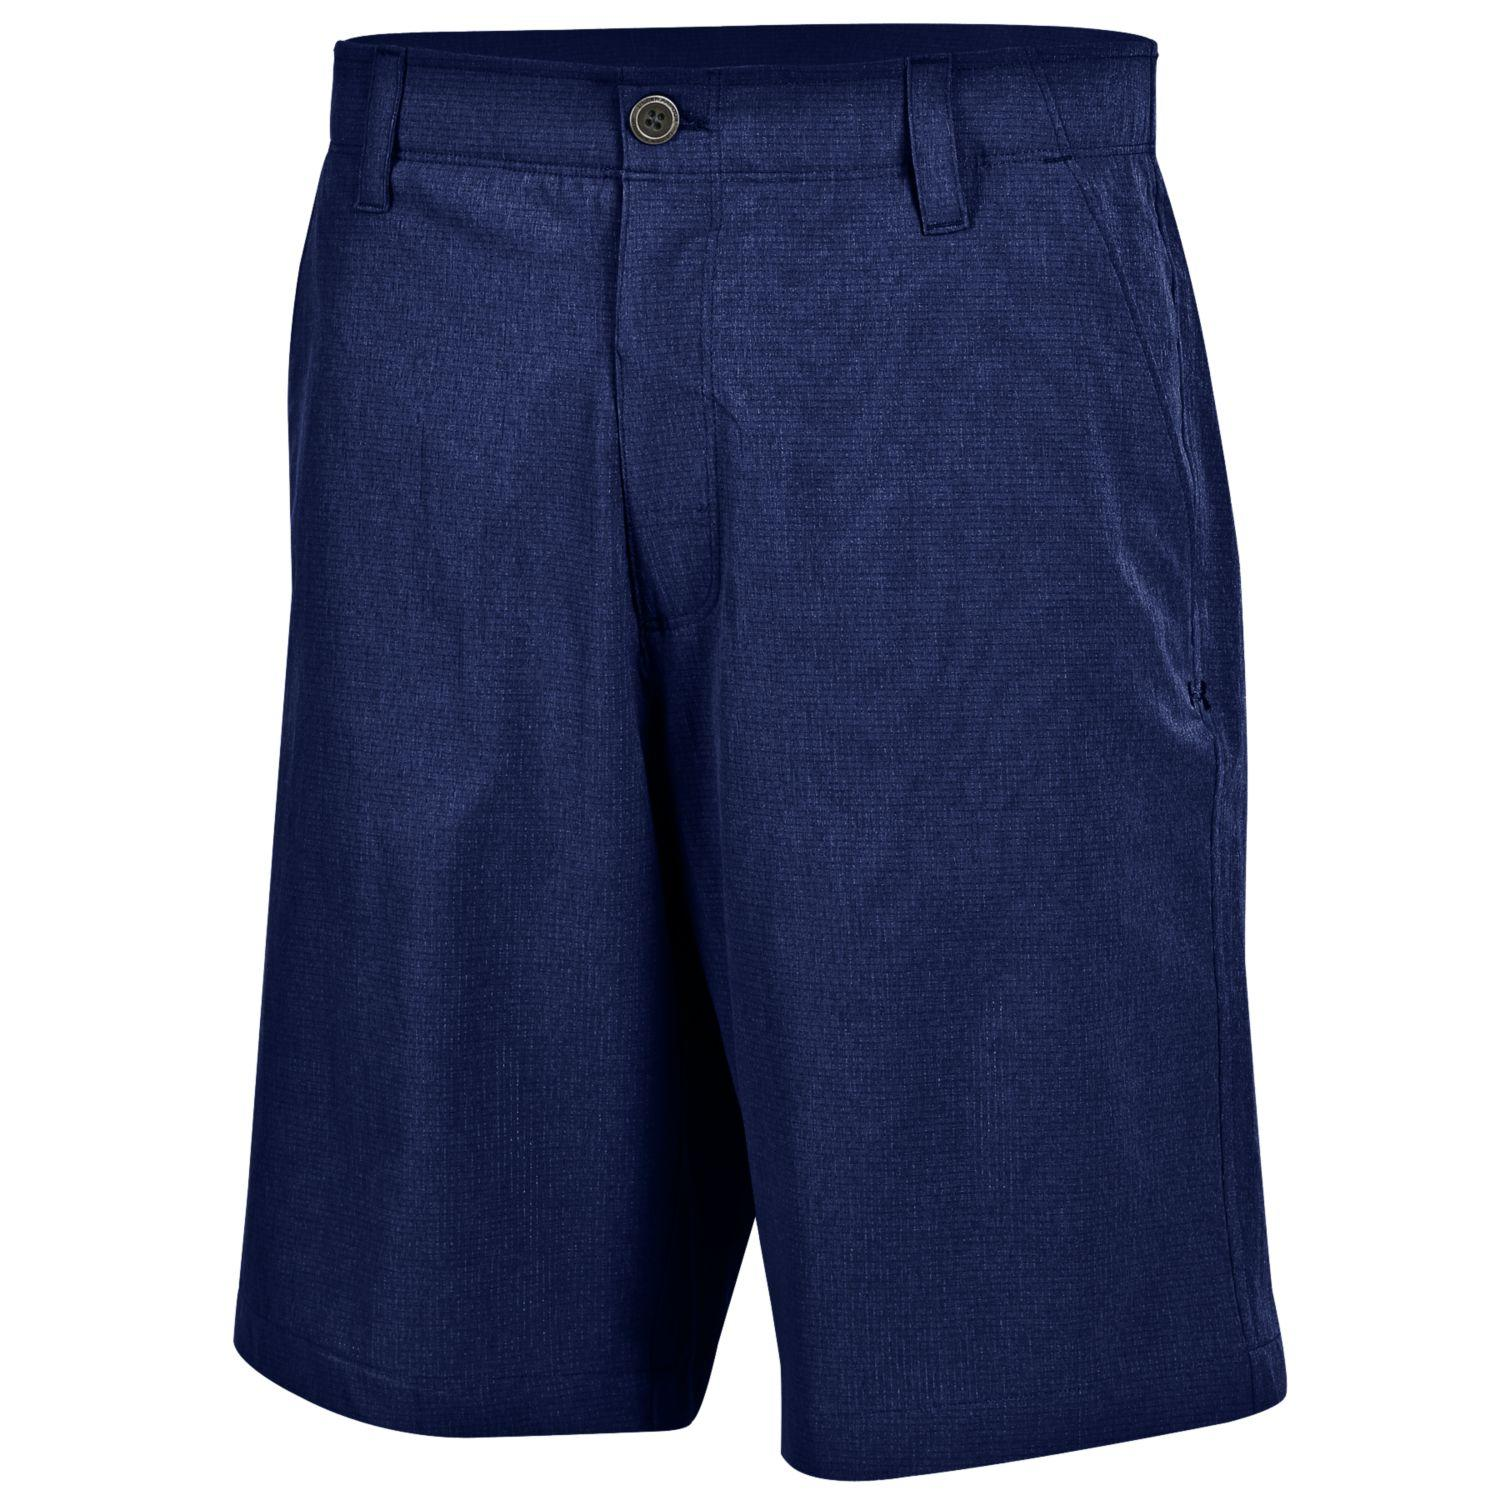 Under Armour Mens 2018 Match Play Vented Short